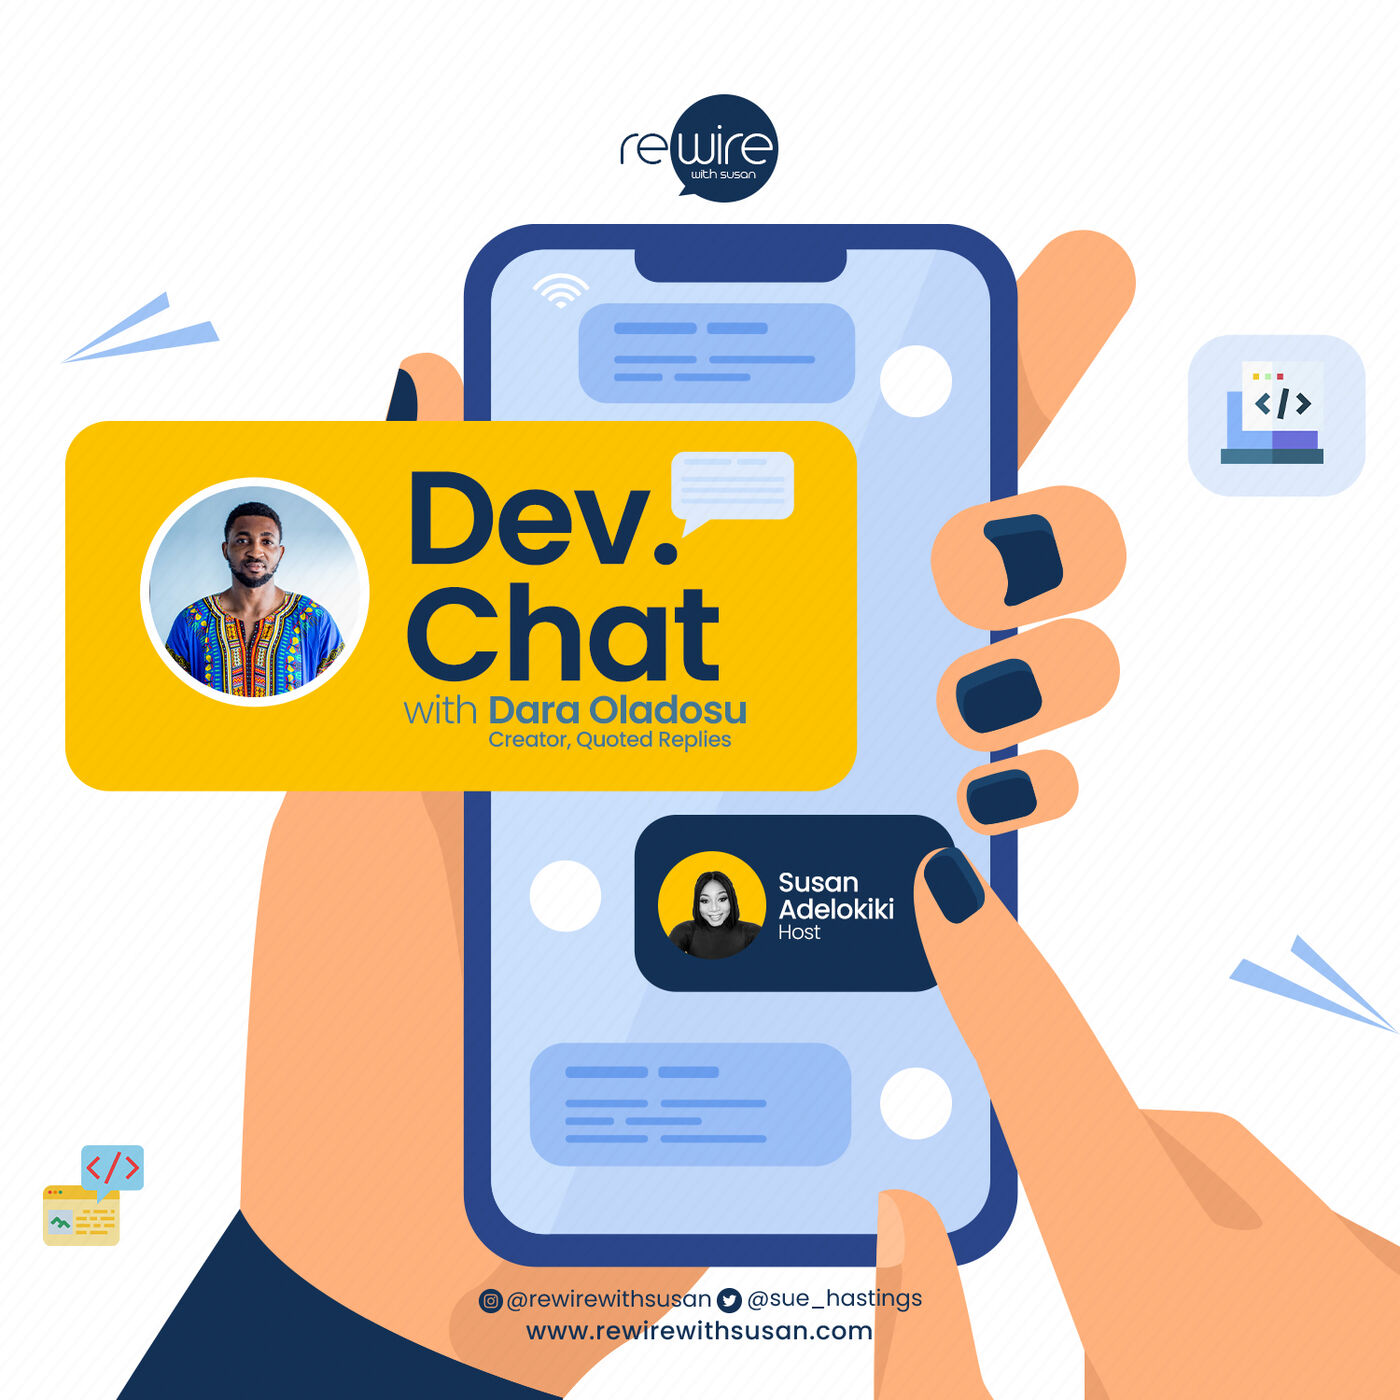 Dev. Chat with Dara Oladosu(Creator, Quoted Replies)